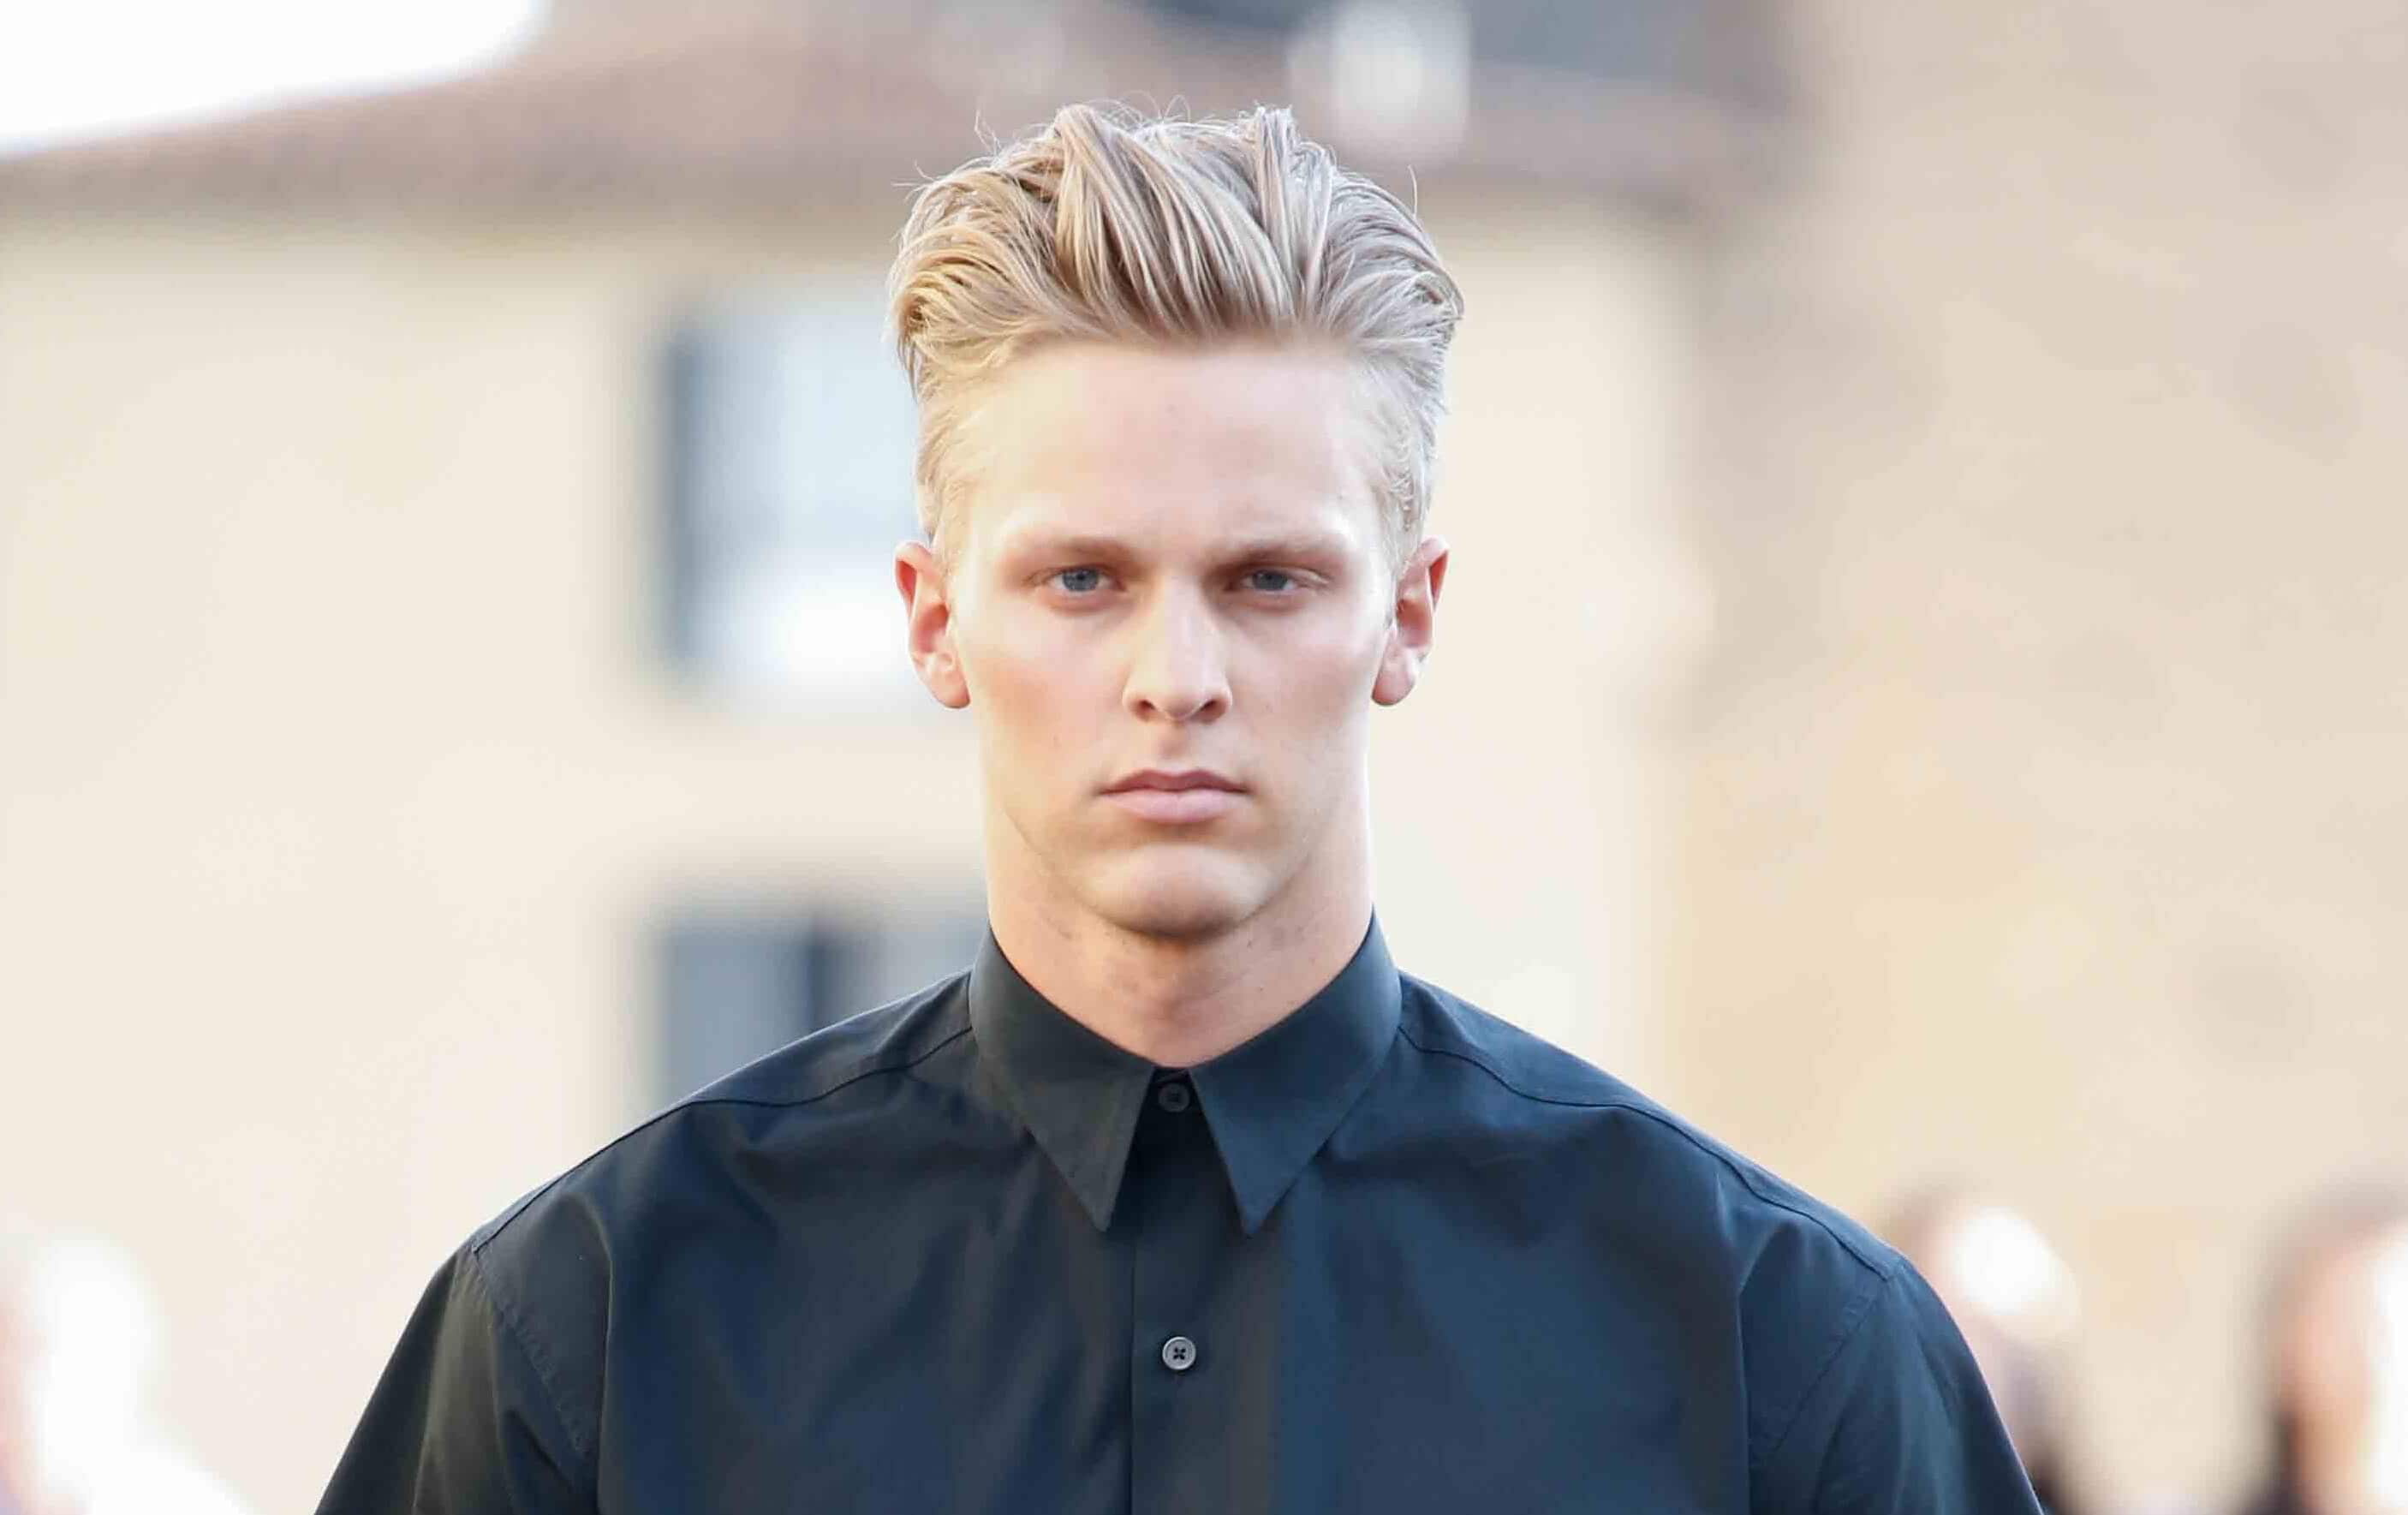 man with blonde hair cut short on the sides and swept up into a quiff on top